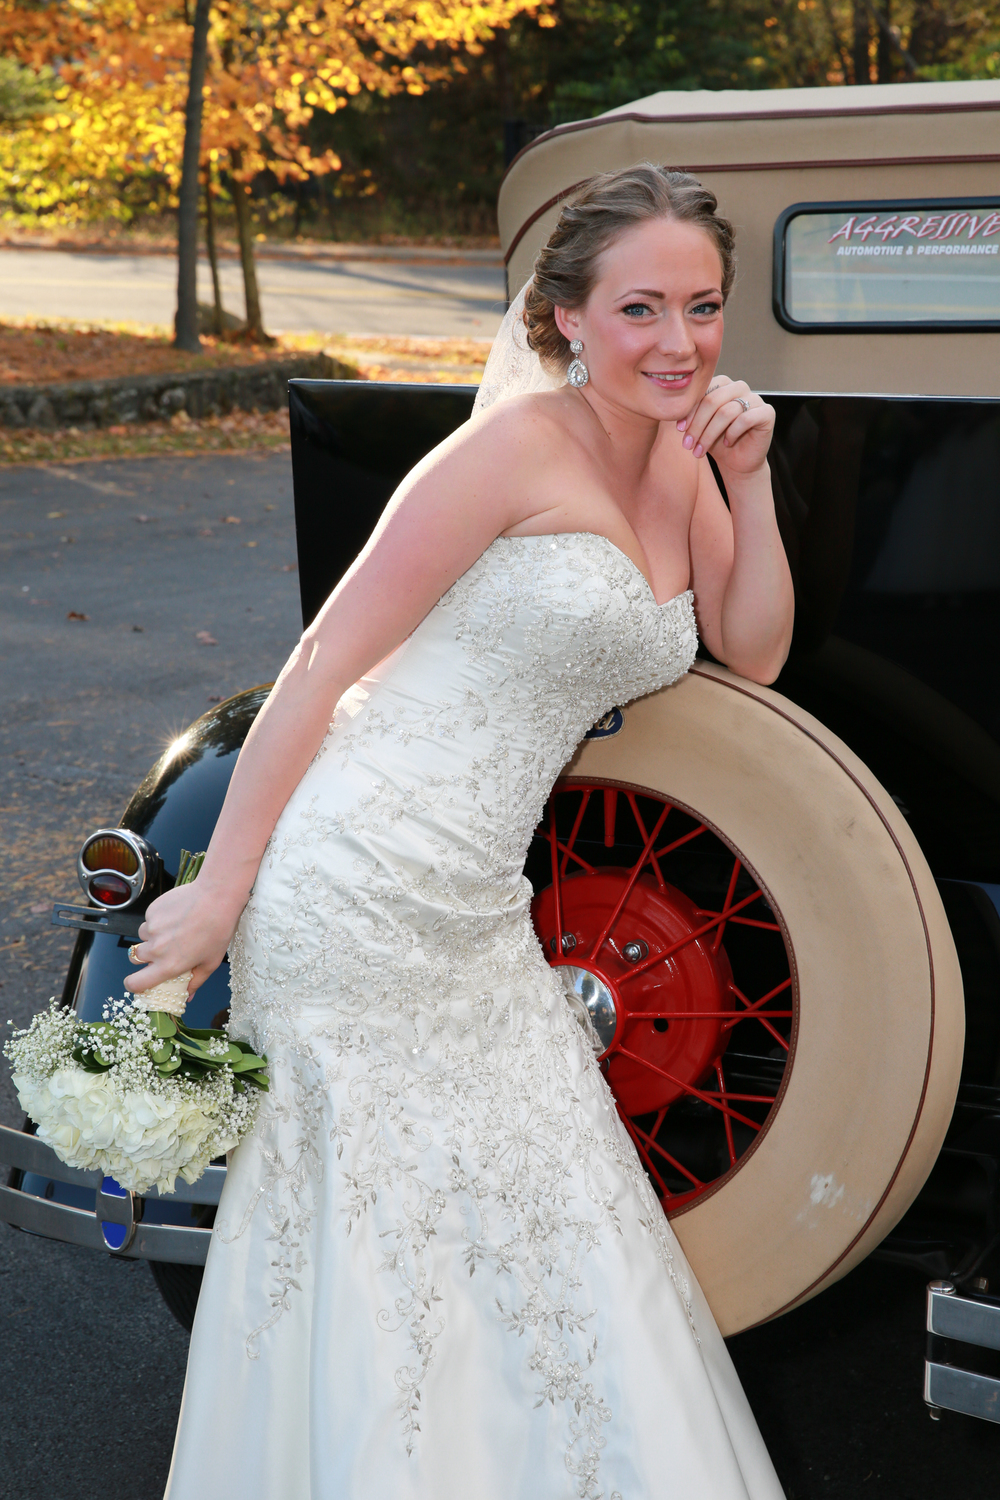 Bride having fun with antique car